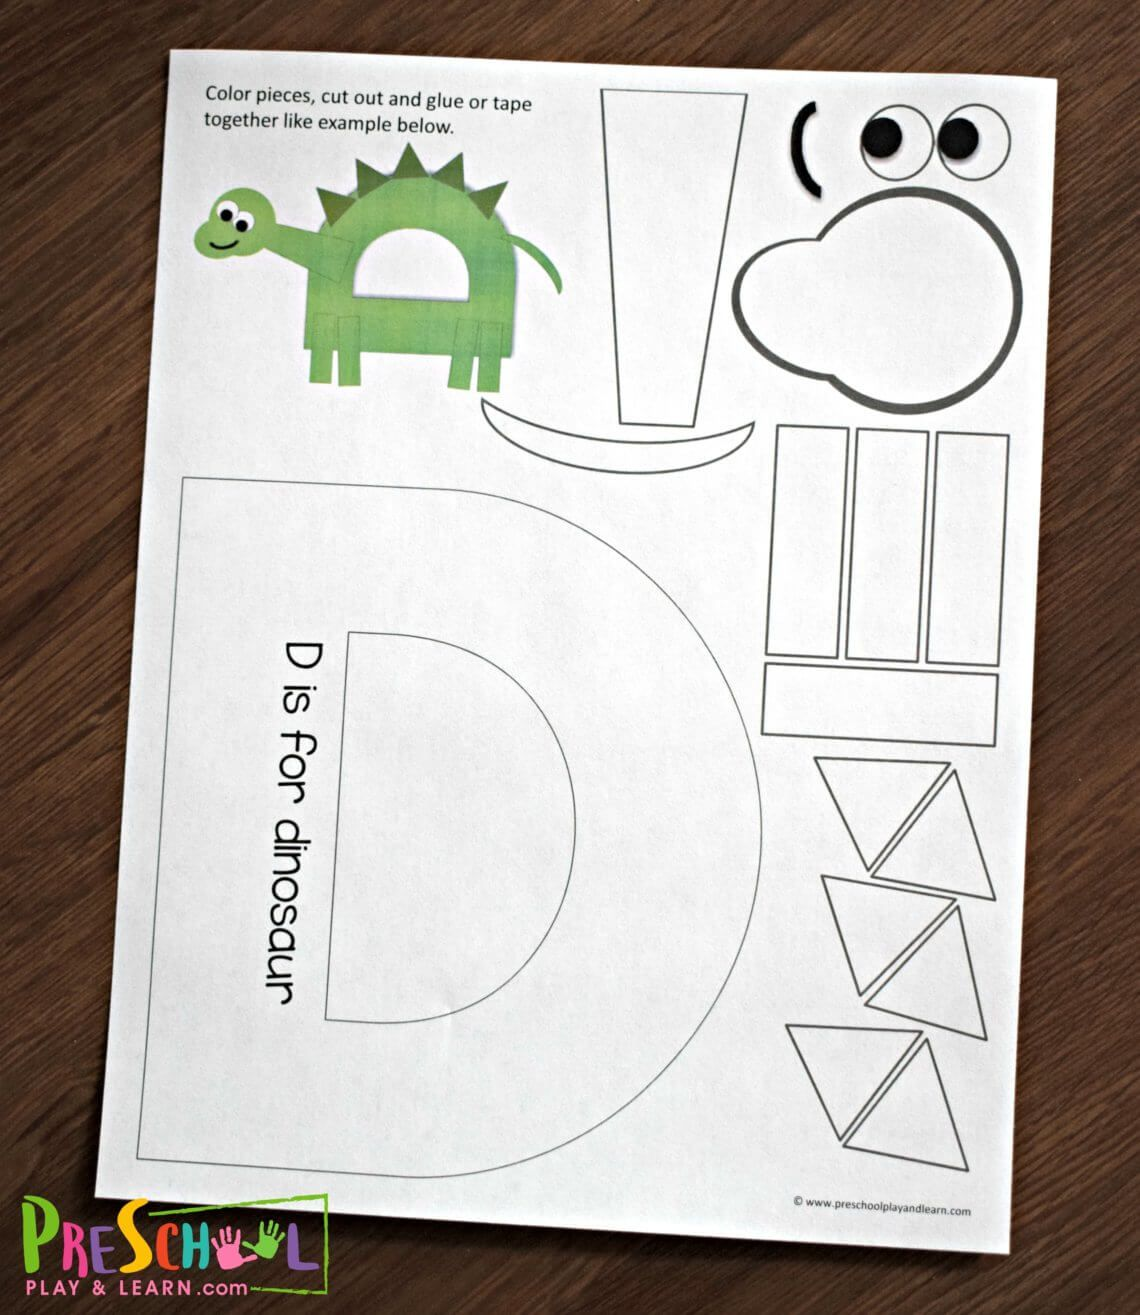 Free Printable Letter D Craft For Preschoolers Letter A Crafts Letter D Crafts Preschool Letter Crafts [ 1315 x 1140 Pixel ]